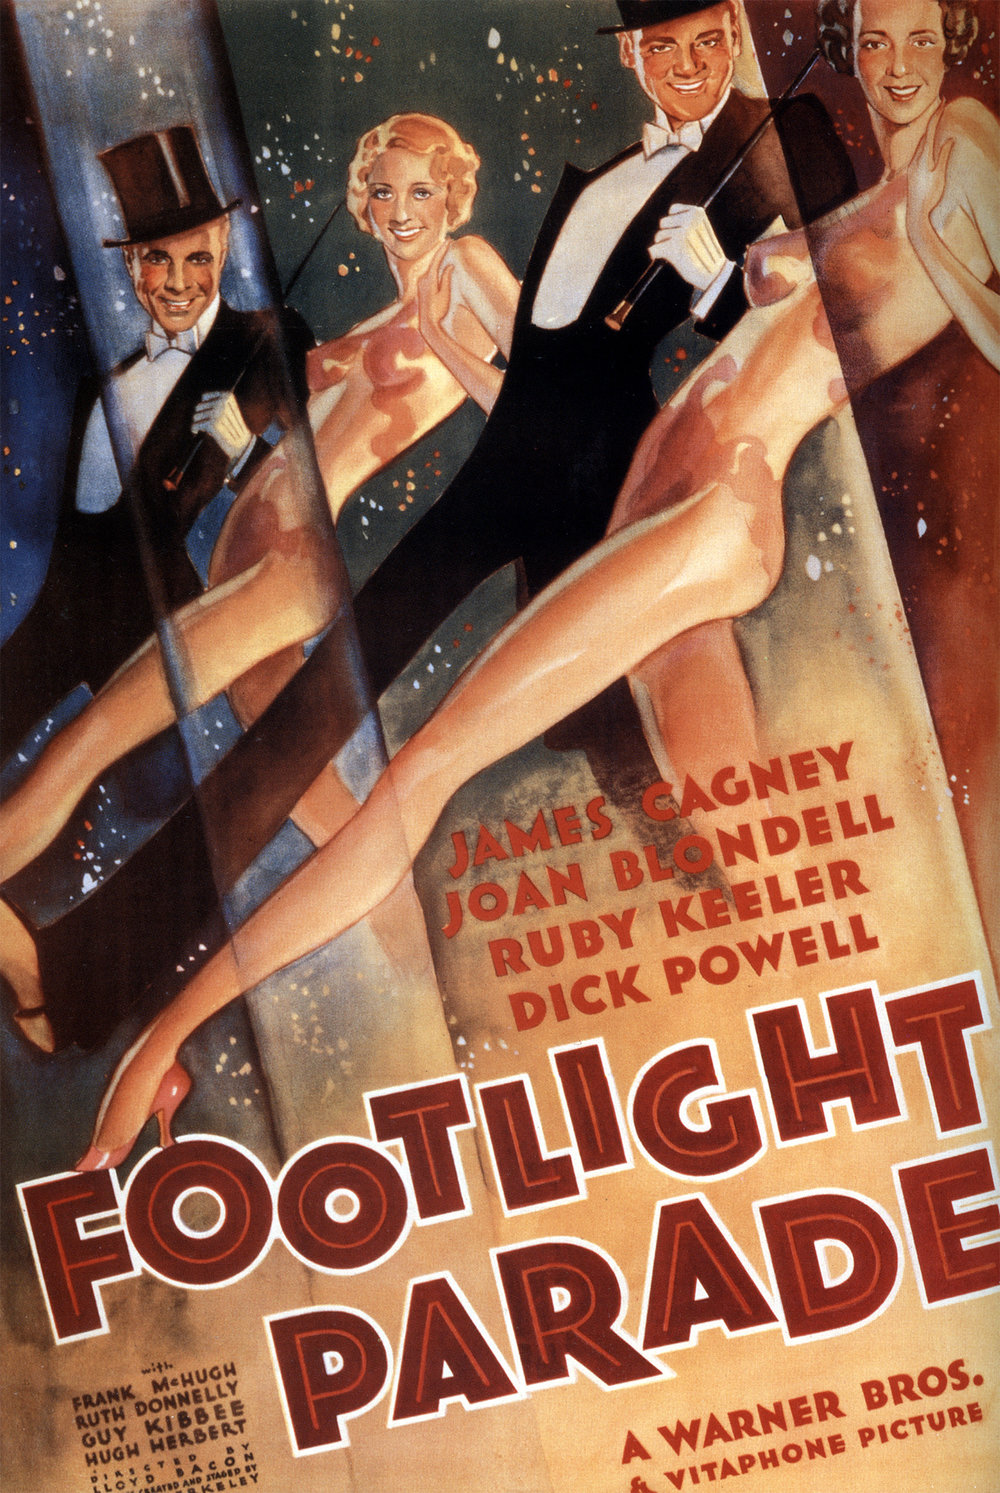 footlight-parade-33-poster-dm-01-p2.jpg